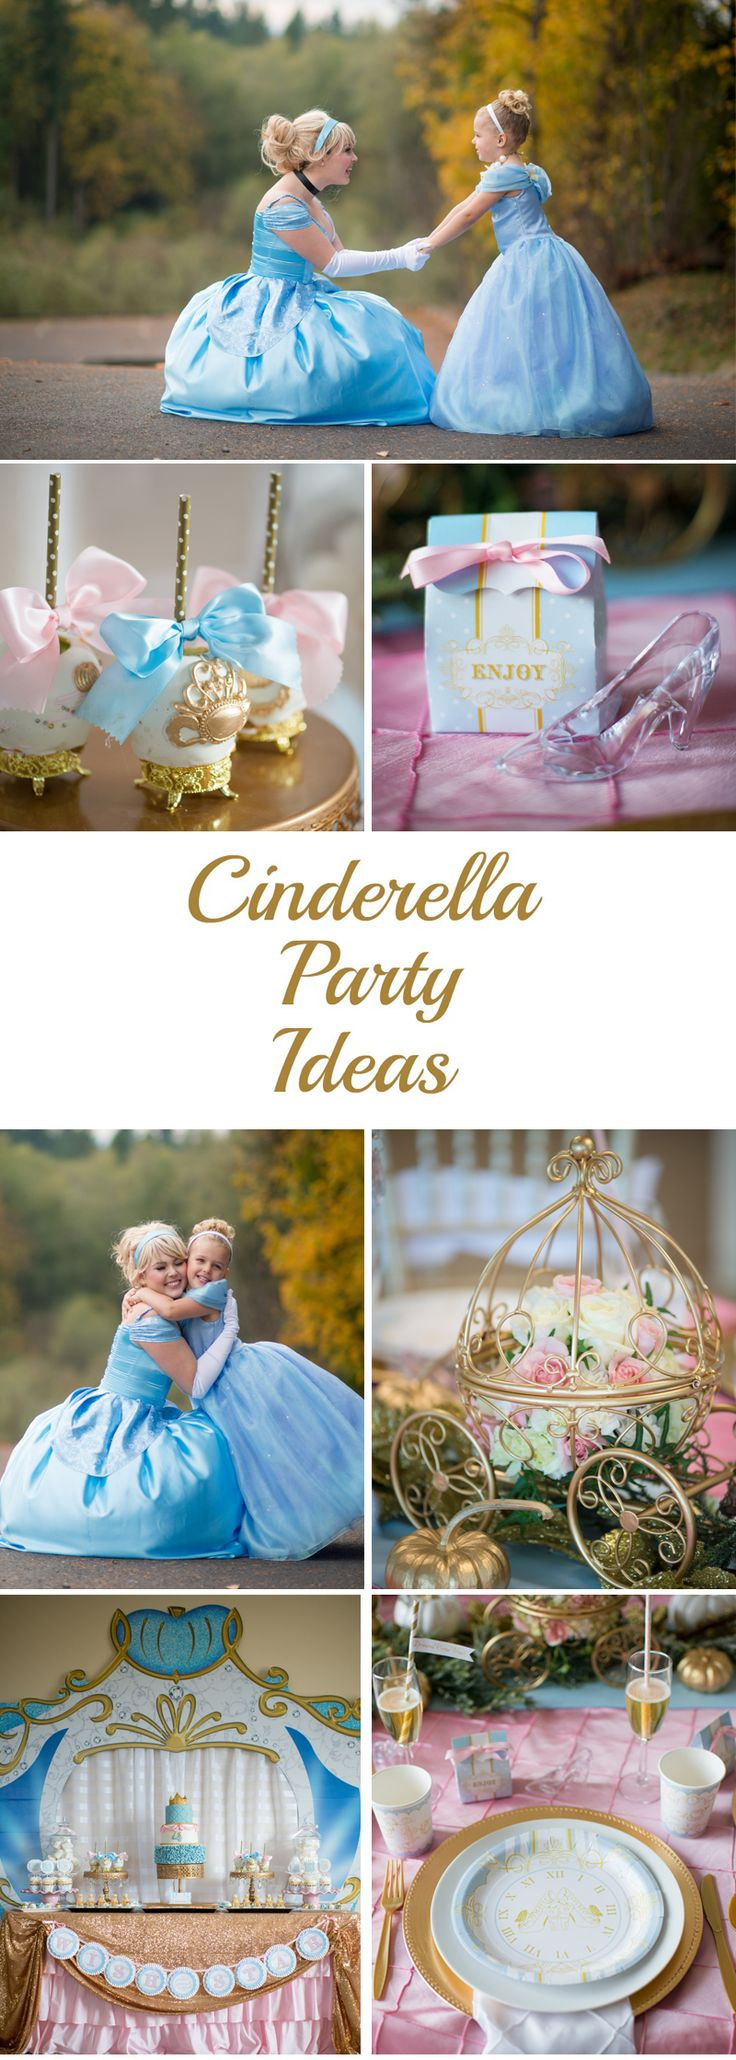 Cinderella-Birthday-Party-2